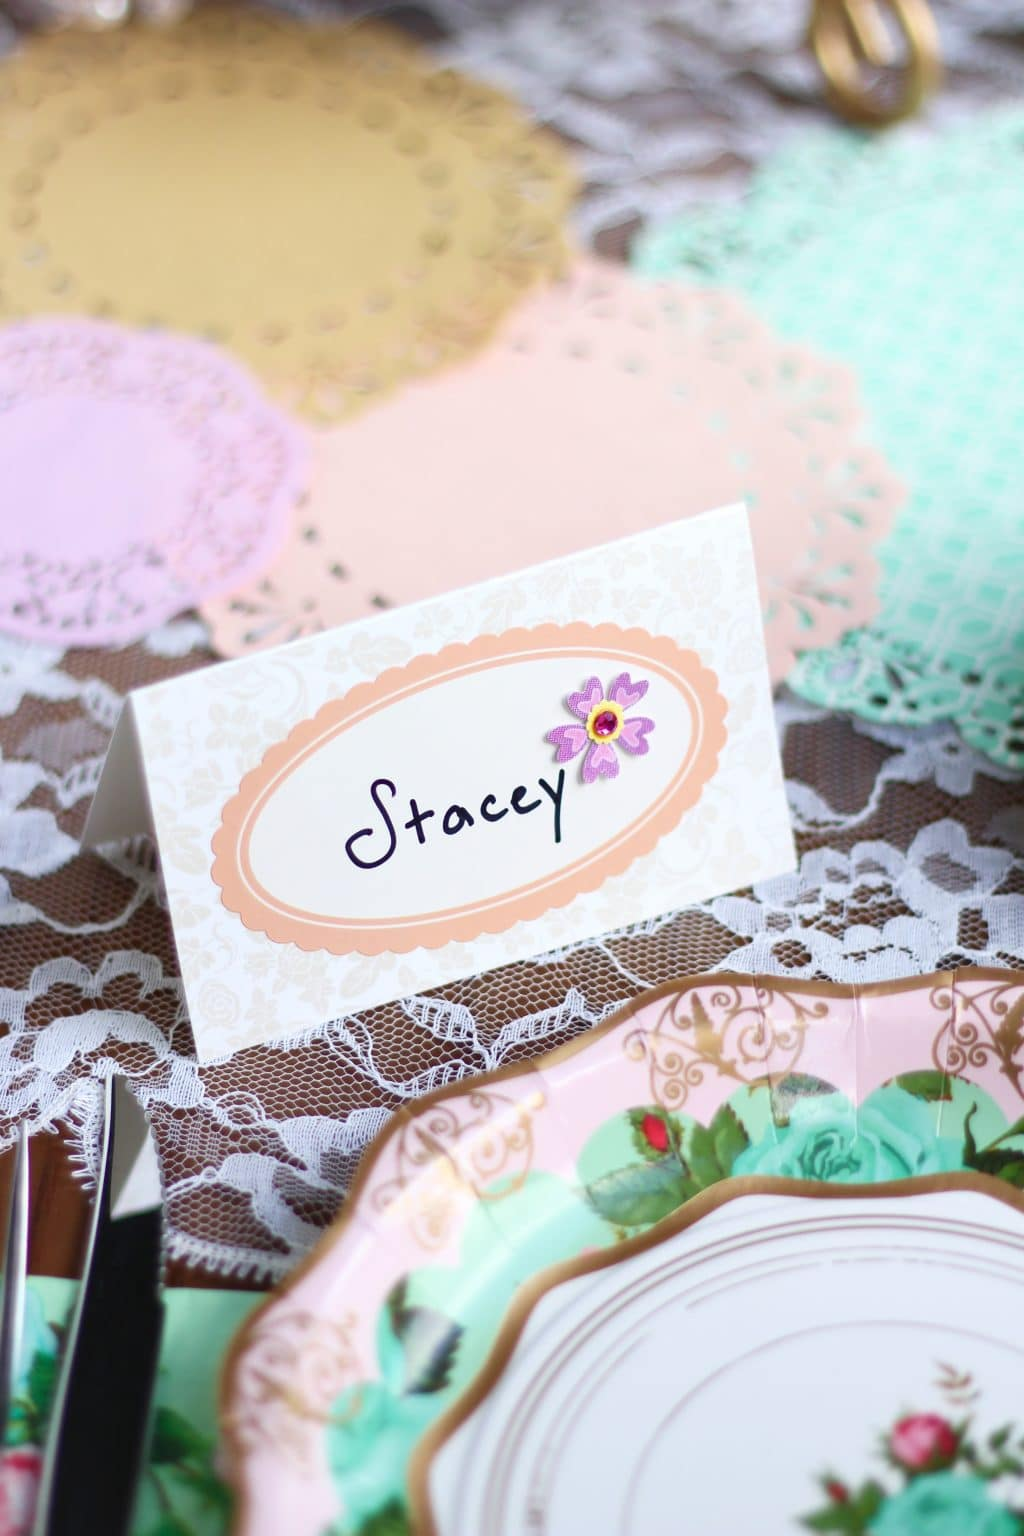 DIY Jeweled Place Cards - Would be lovely for Bridal Shower or other party. #DIY #PlaceCards #Party